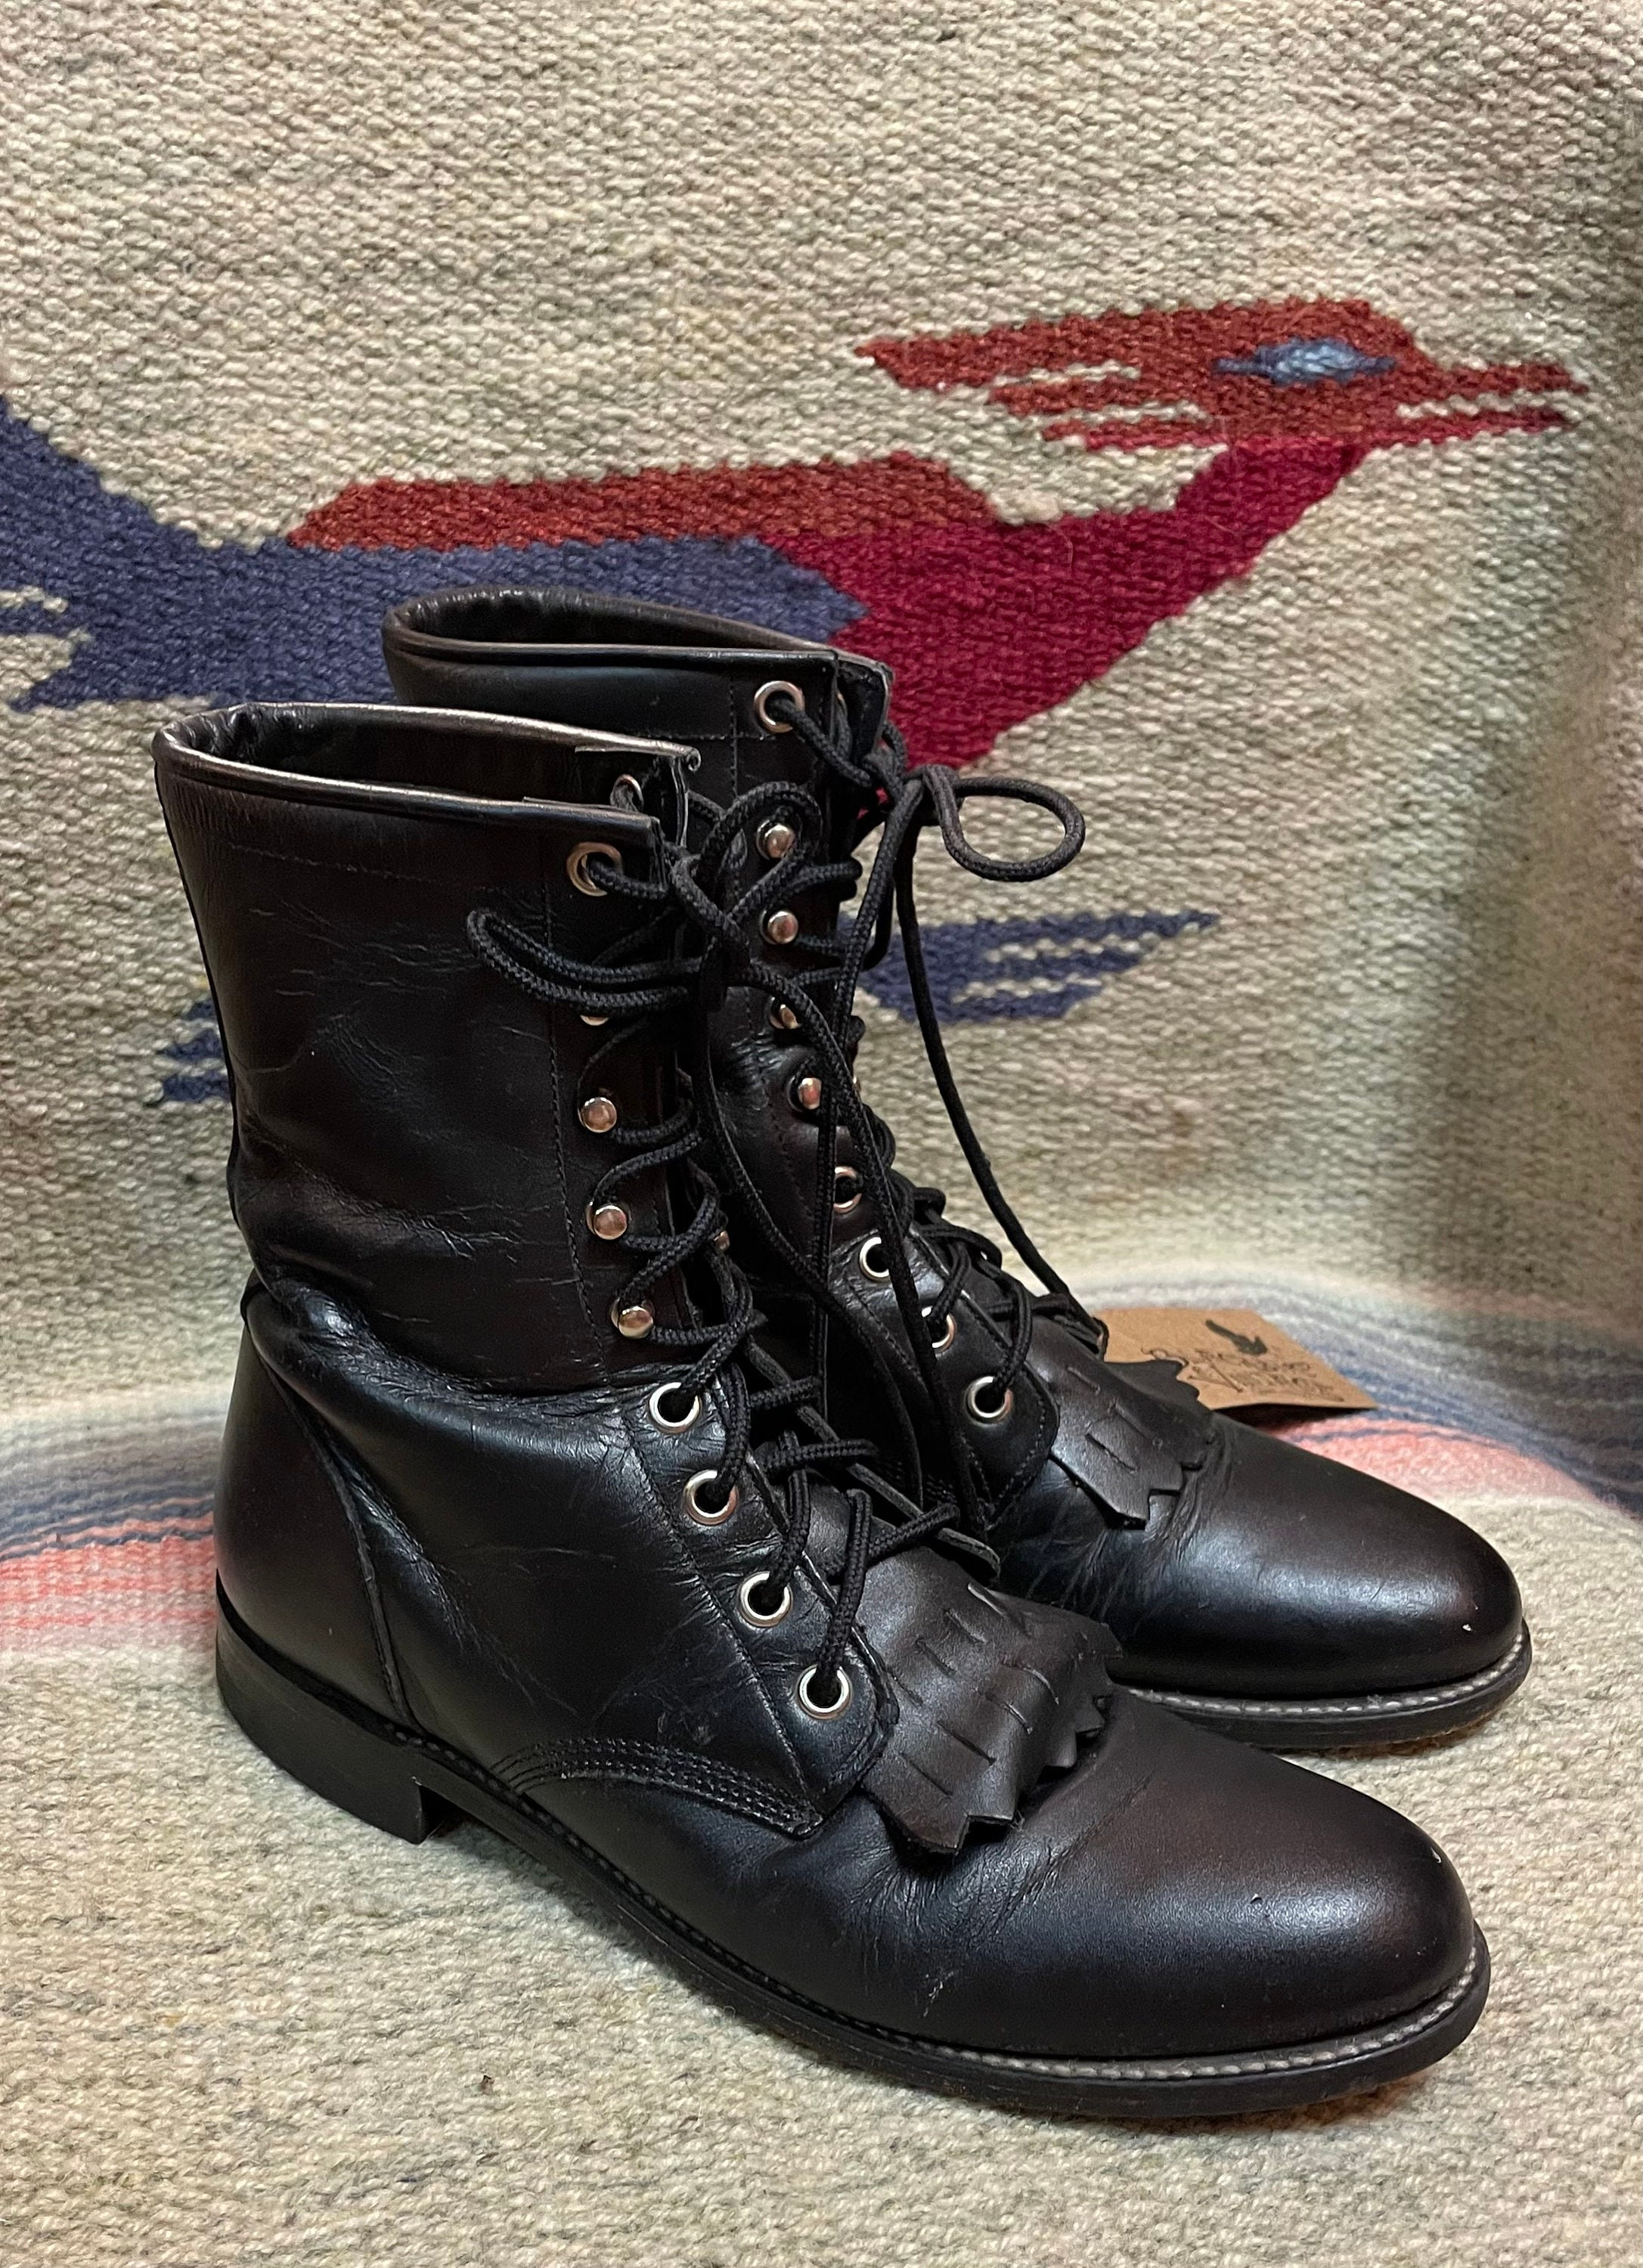 80s Dresses | Casual to Party Dresses 1980s1990s Vintage Justin Boho Western Cowgirl Black Roper Ranch Boots Size 7 $0.00 AT vintagedancer.com